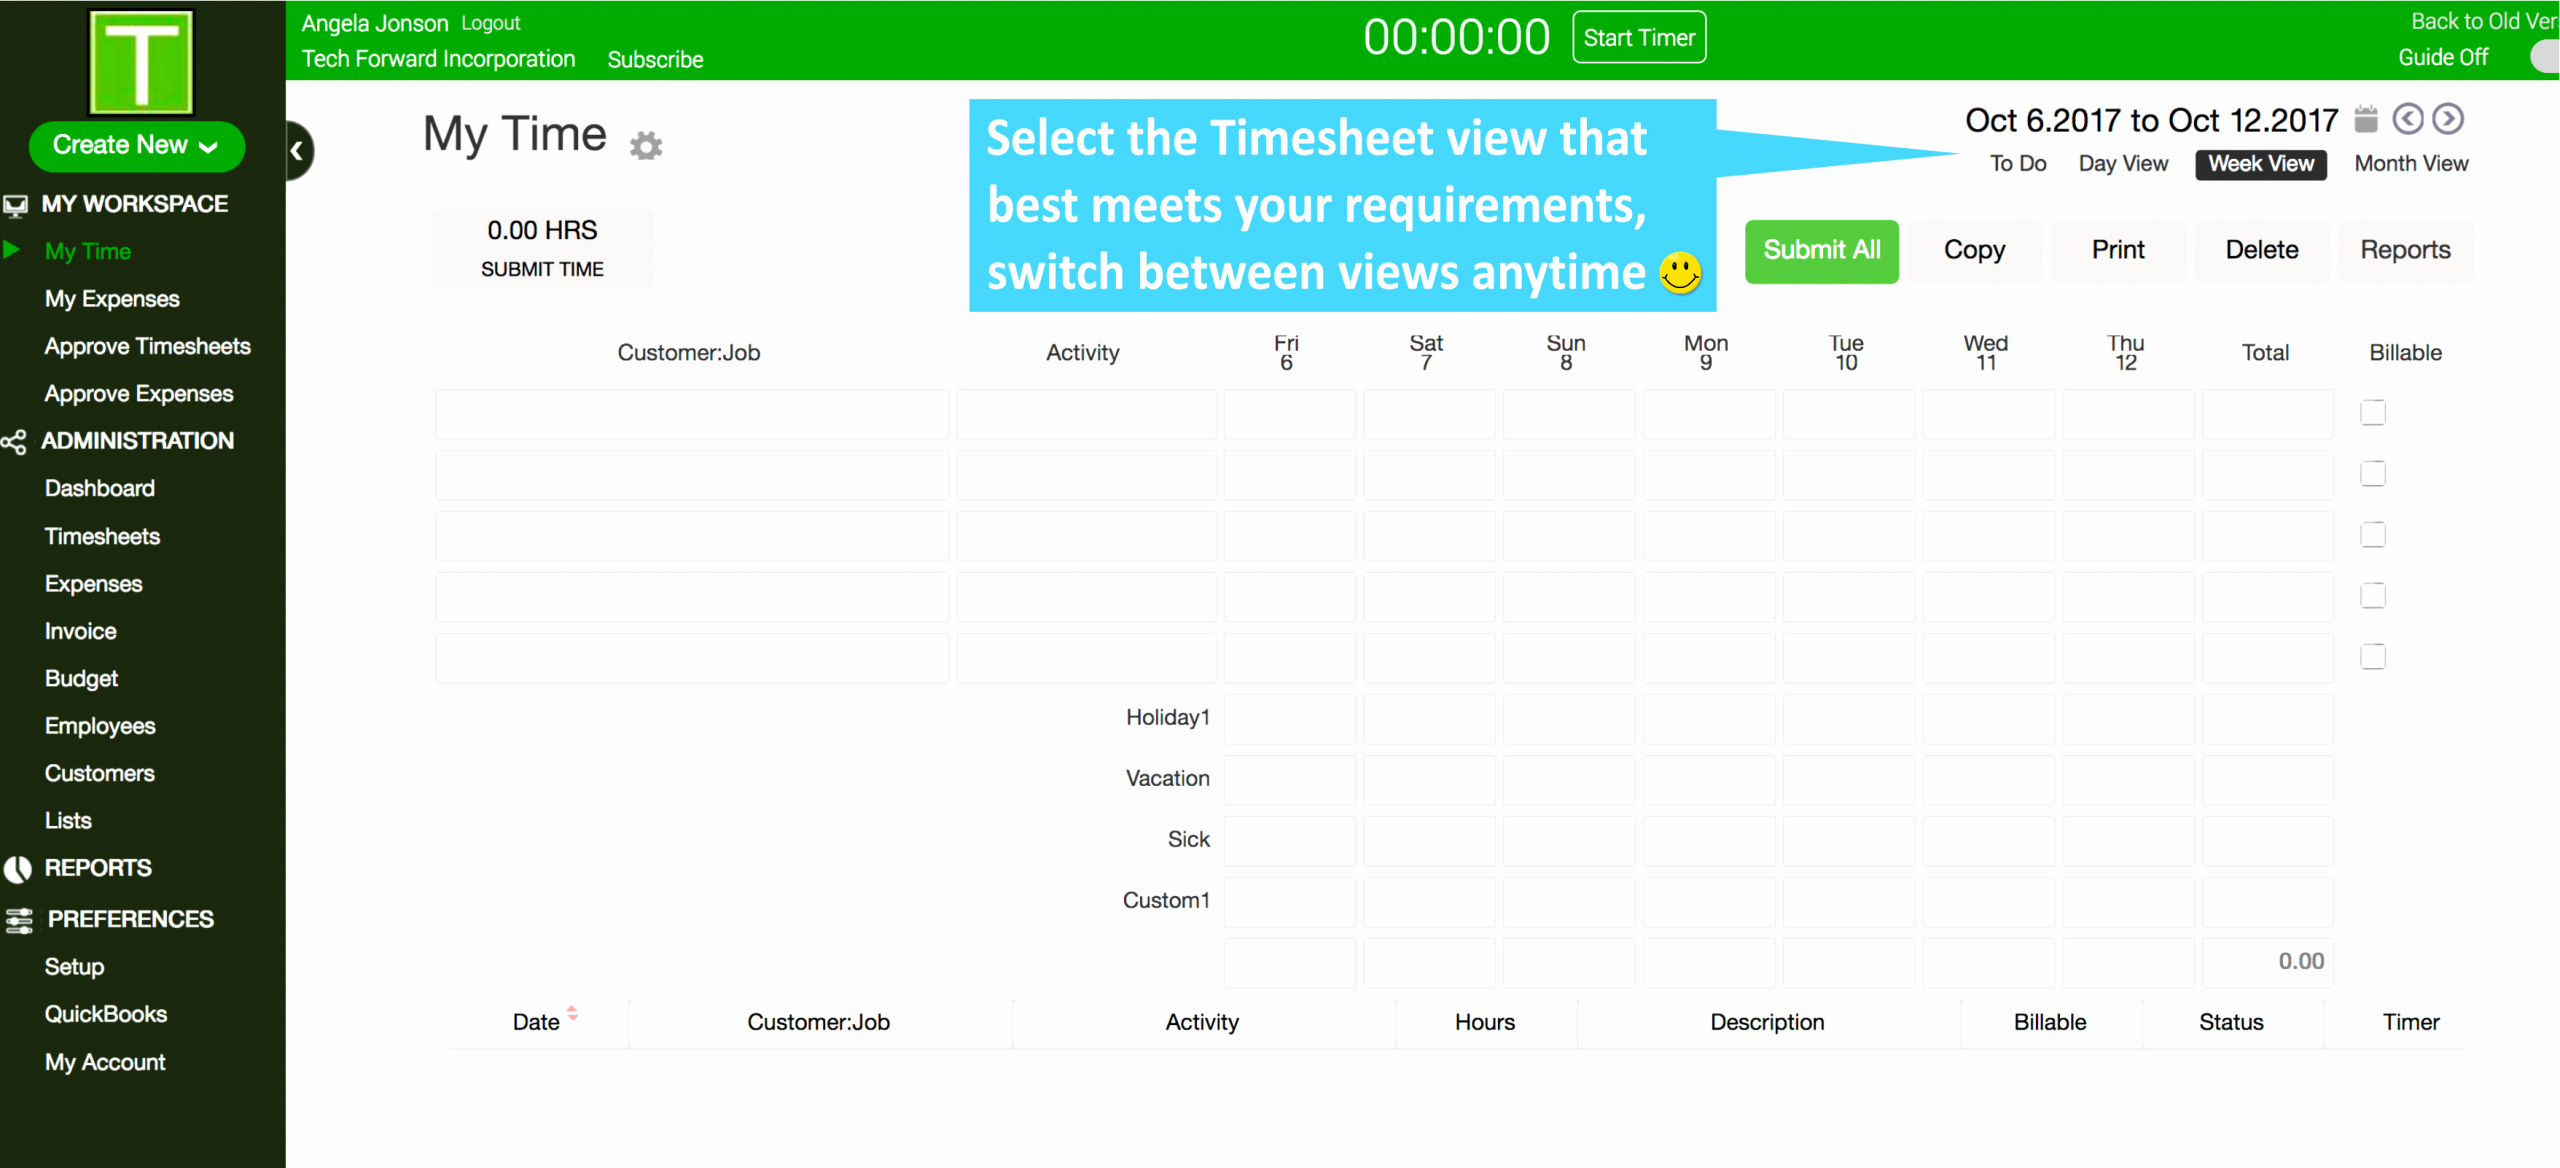 Coty Timesheets